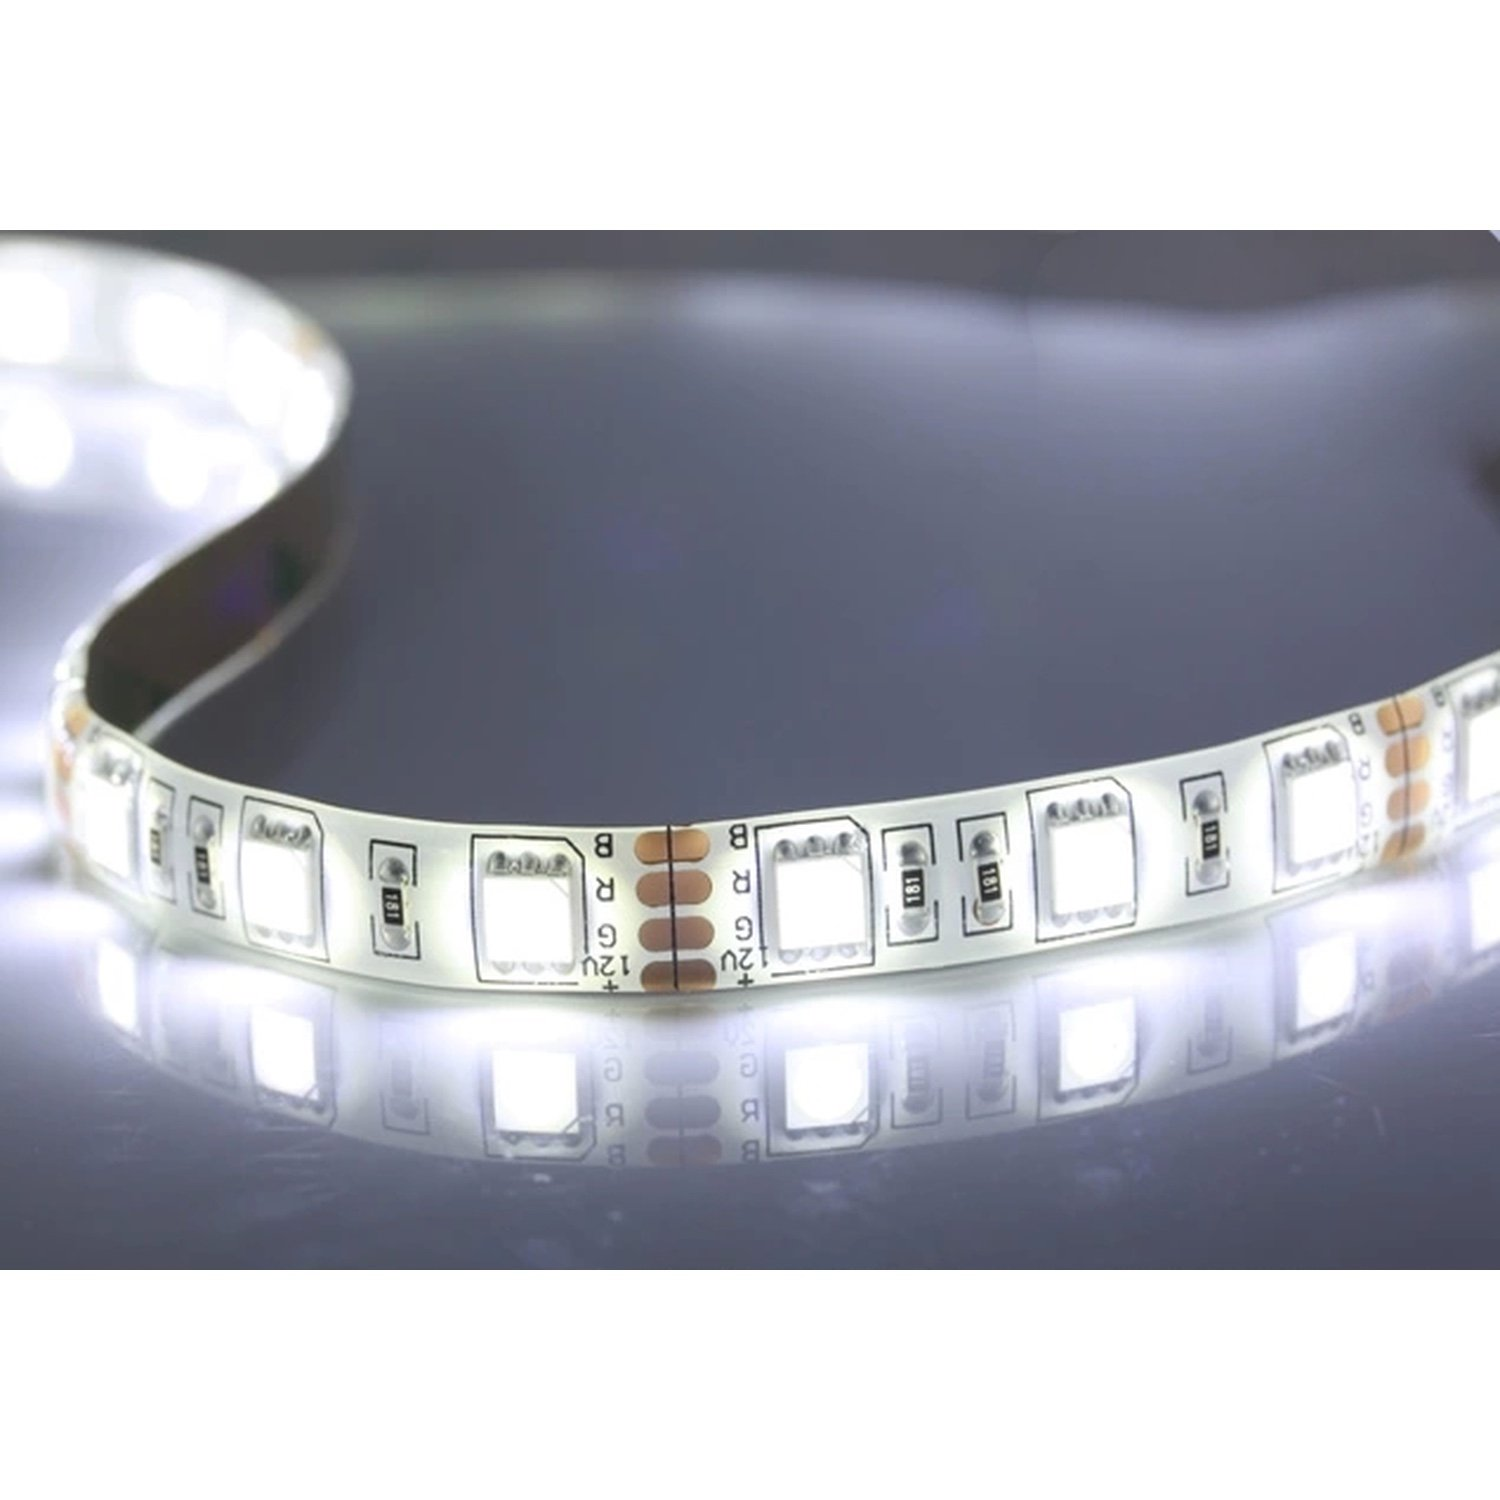 LED Strip 12V DC SMD5050 60LED/metre (5 Poke) 14W/Poke Bright White 6000-6500K